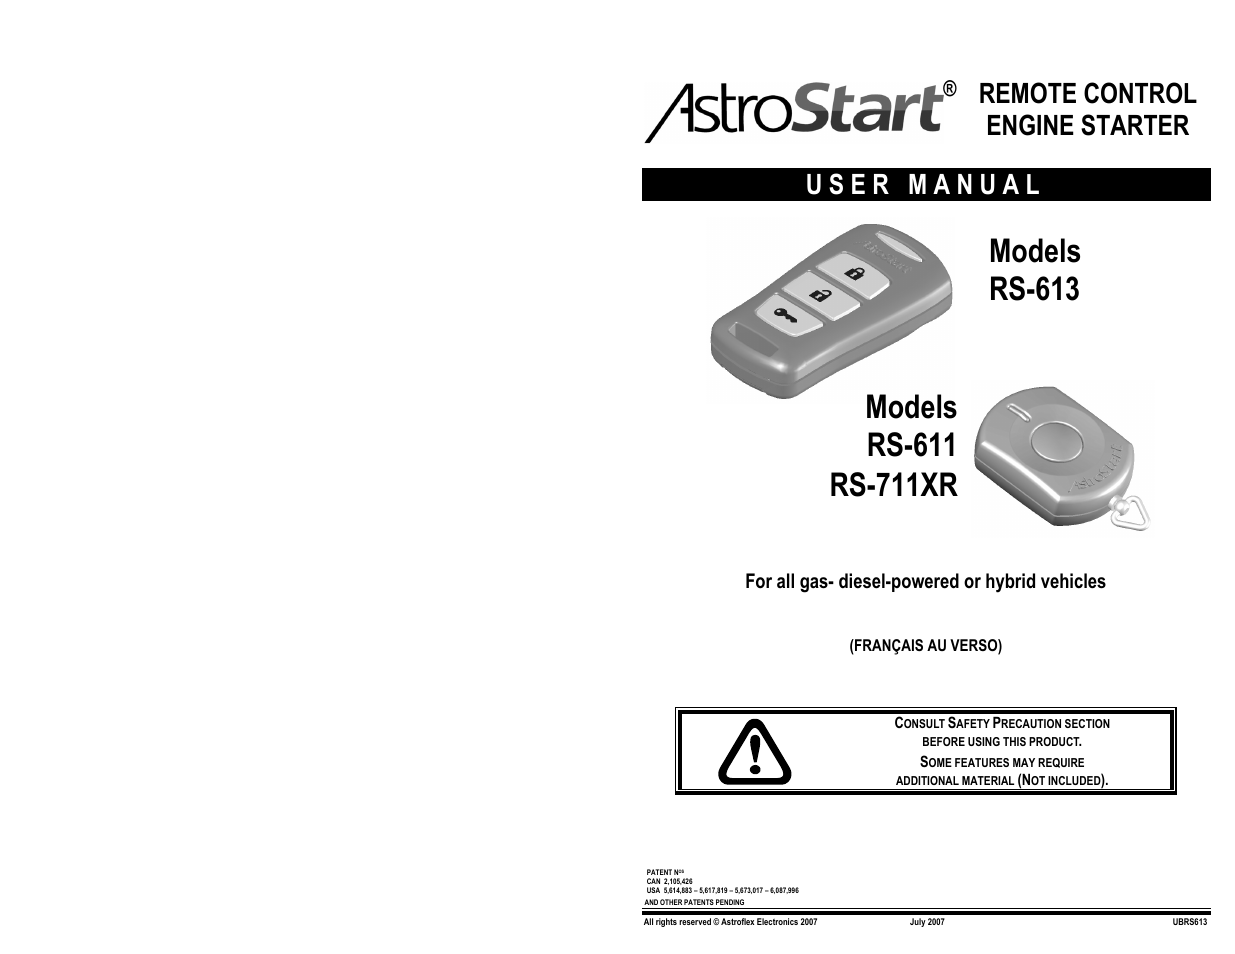 astrostart rs 611 page1?resize\=665%2C514 astrostart wiring diagram astrostart 2205a \u2022 wiring diagrams j  at gsmx.co